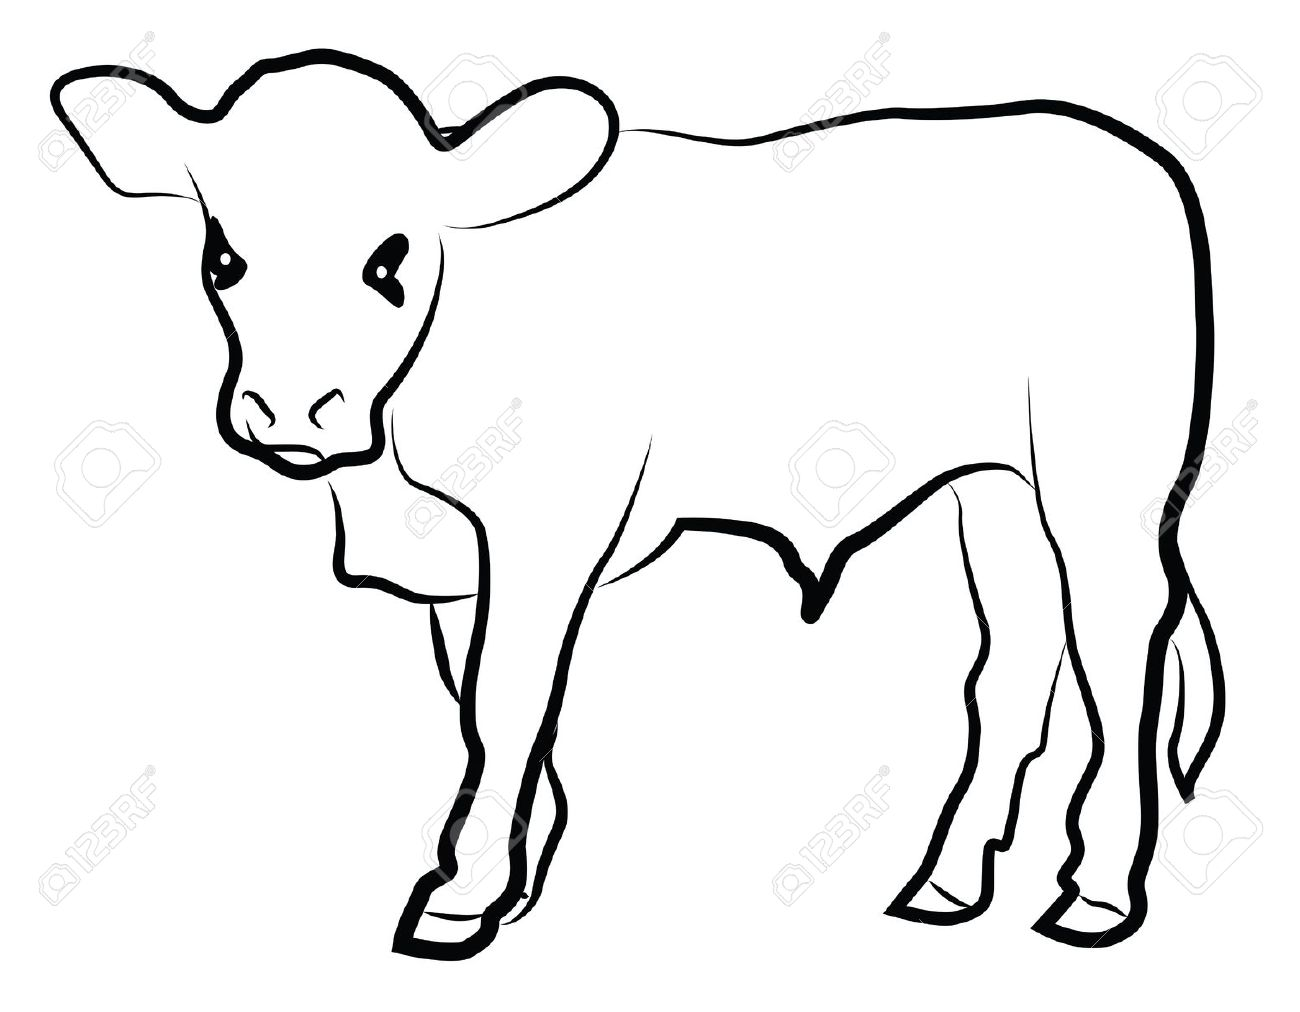 cow silhouette clip art free at getdrawings com free for personal rh getdrawings com clipart cows black and white cow clipart black and white outline